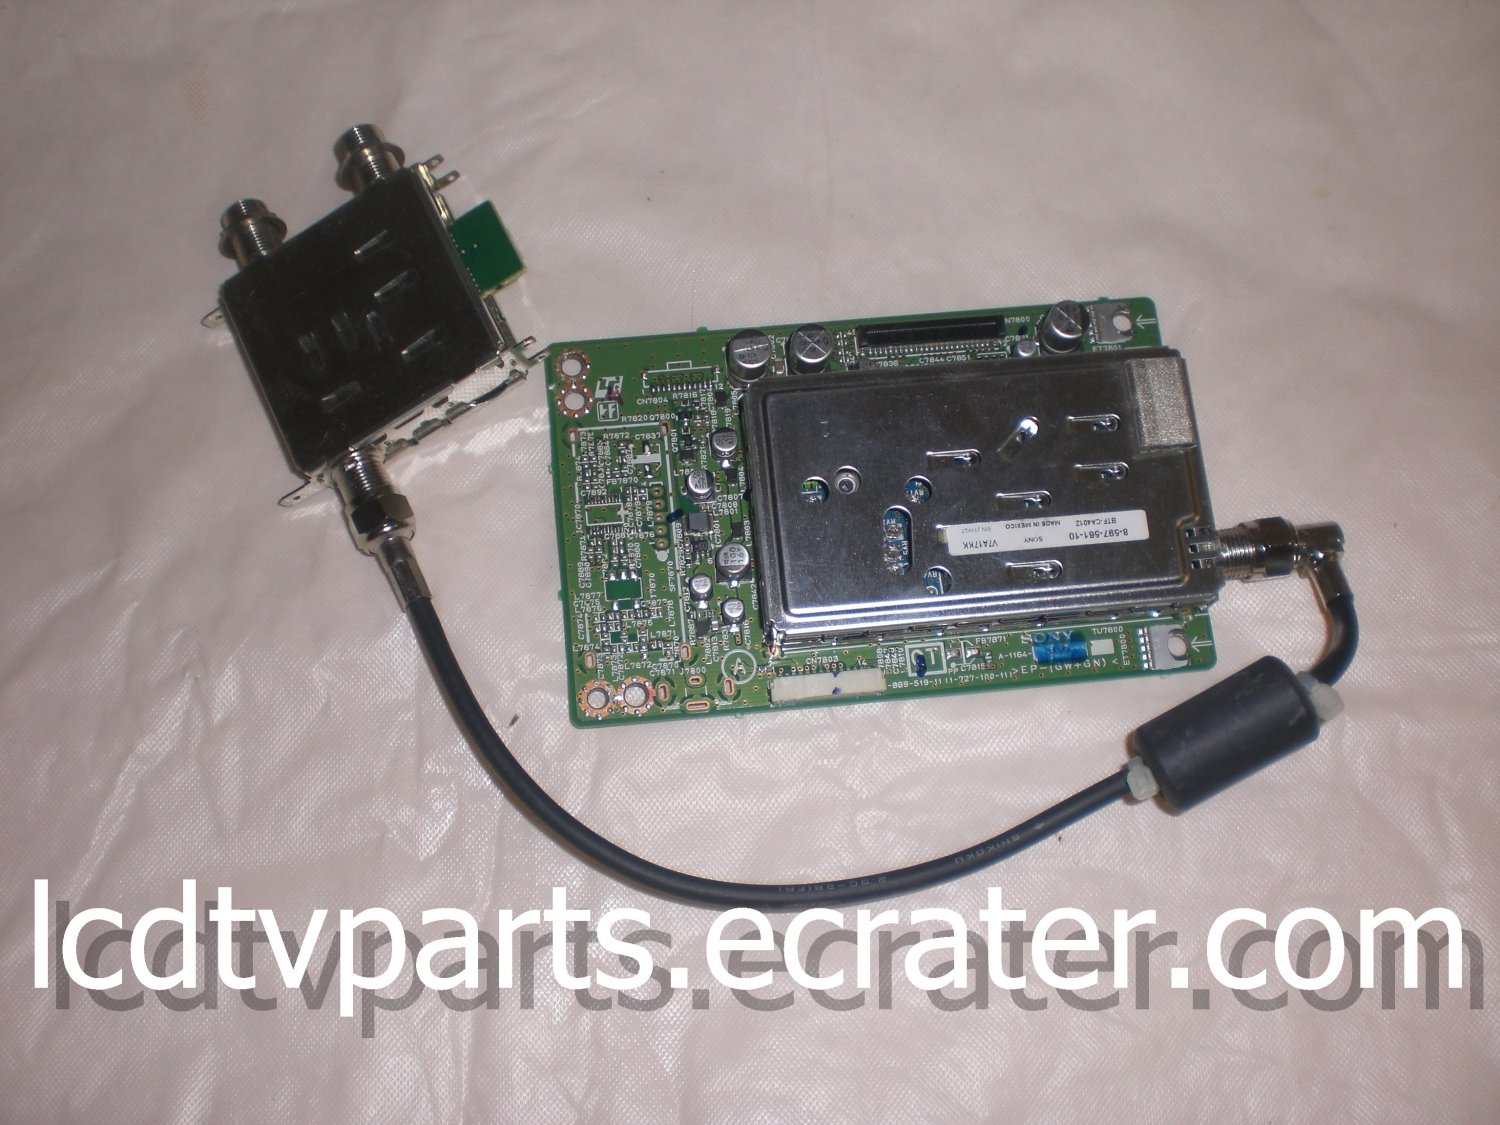 1-417-716-11, A-1164-341-B, A-1206-154-A, 1-869-519-11 Tunner Board For SONY KDL-46XBR2